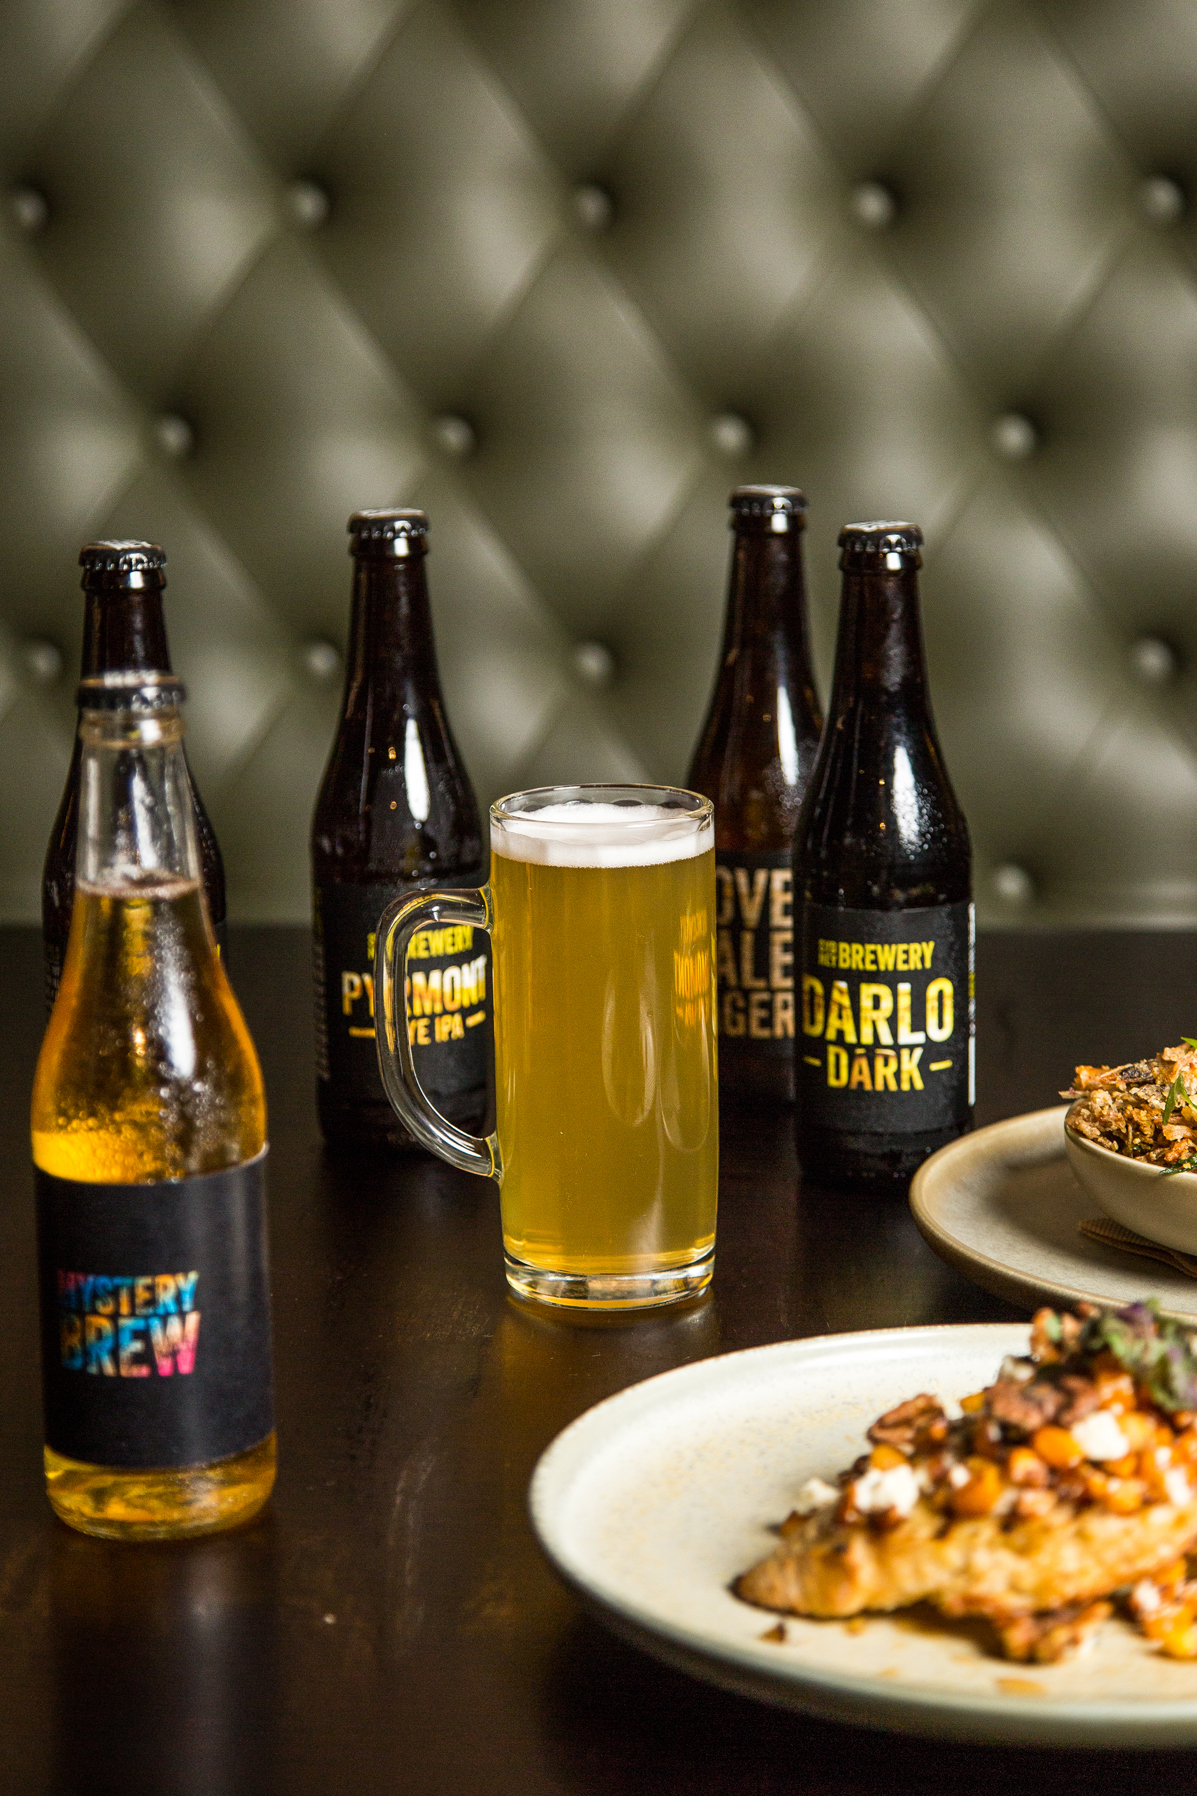 Sydney Brewery Beer with Food